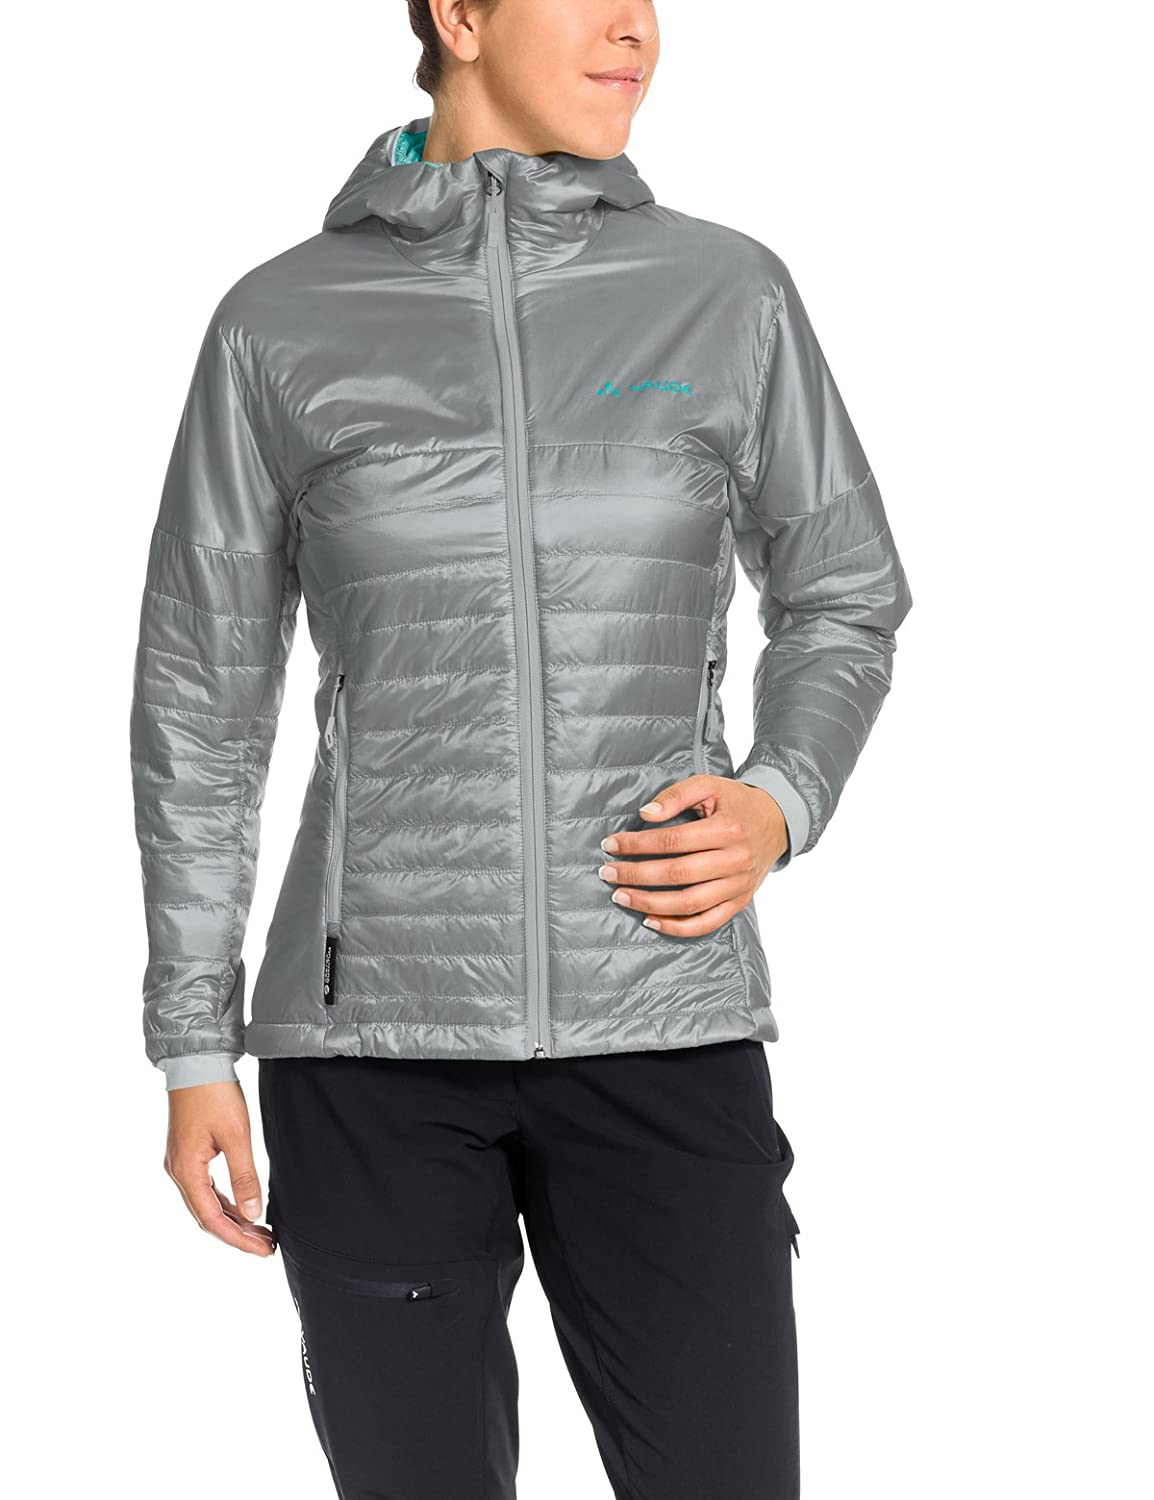 Vaude Damen Freney Jacket Iii Jacke VADE5|#VAUDE